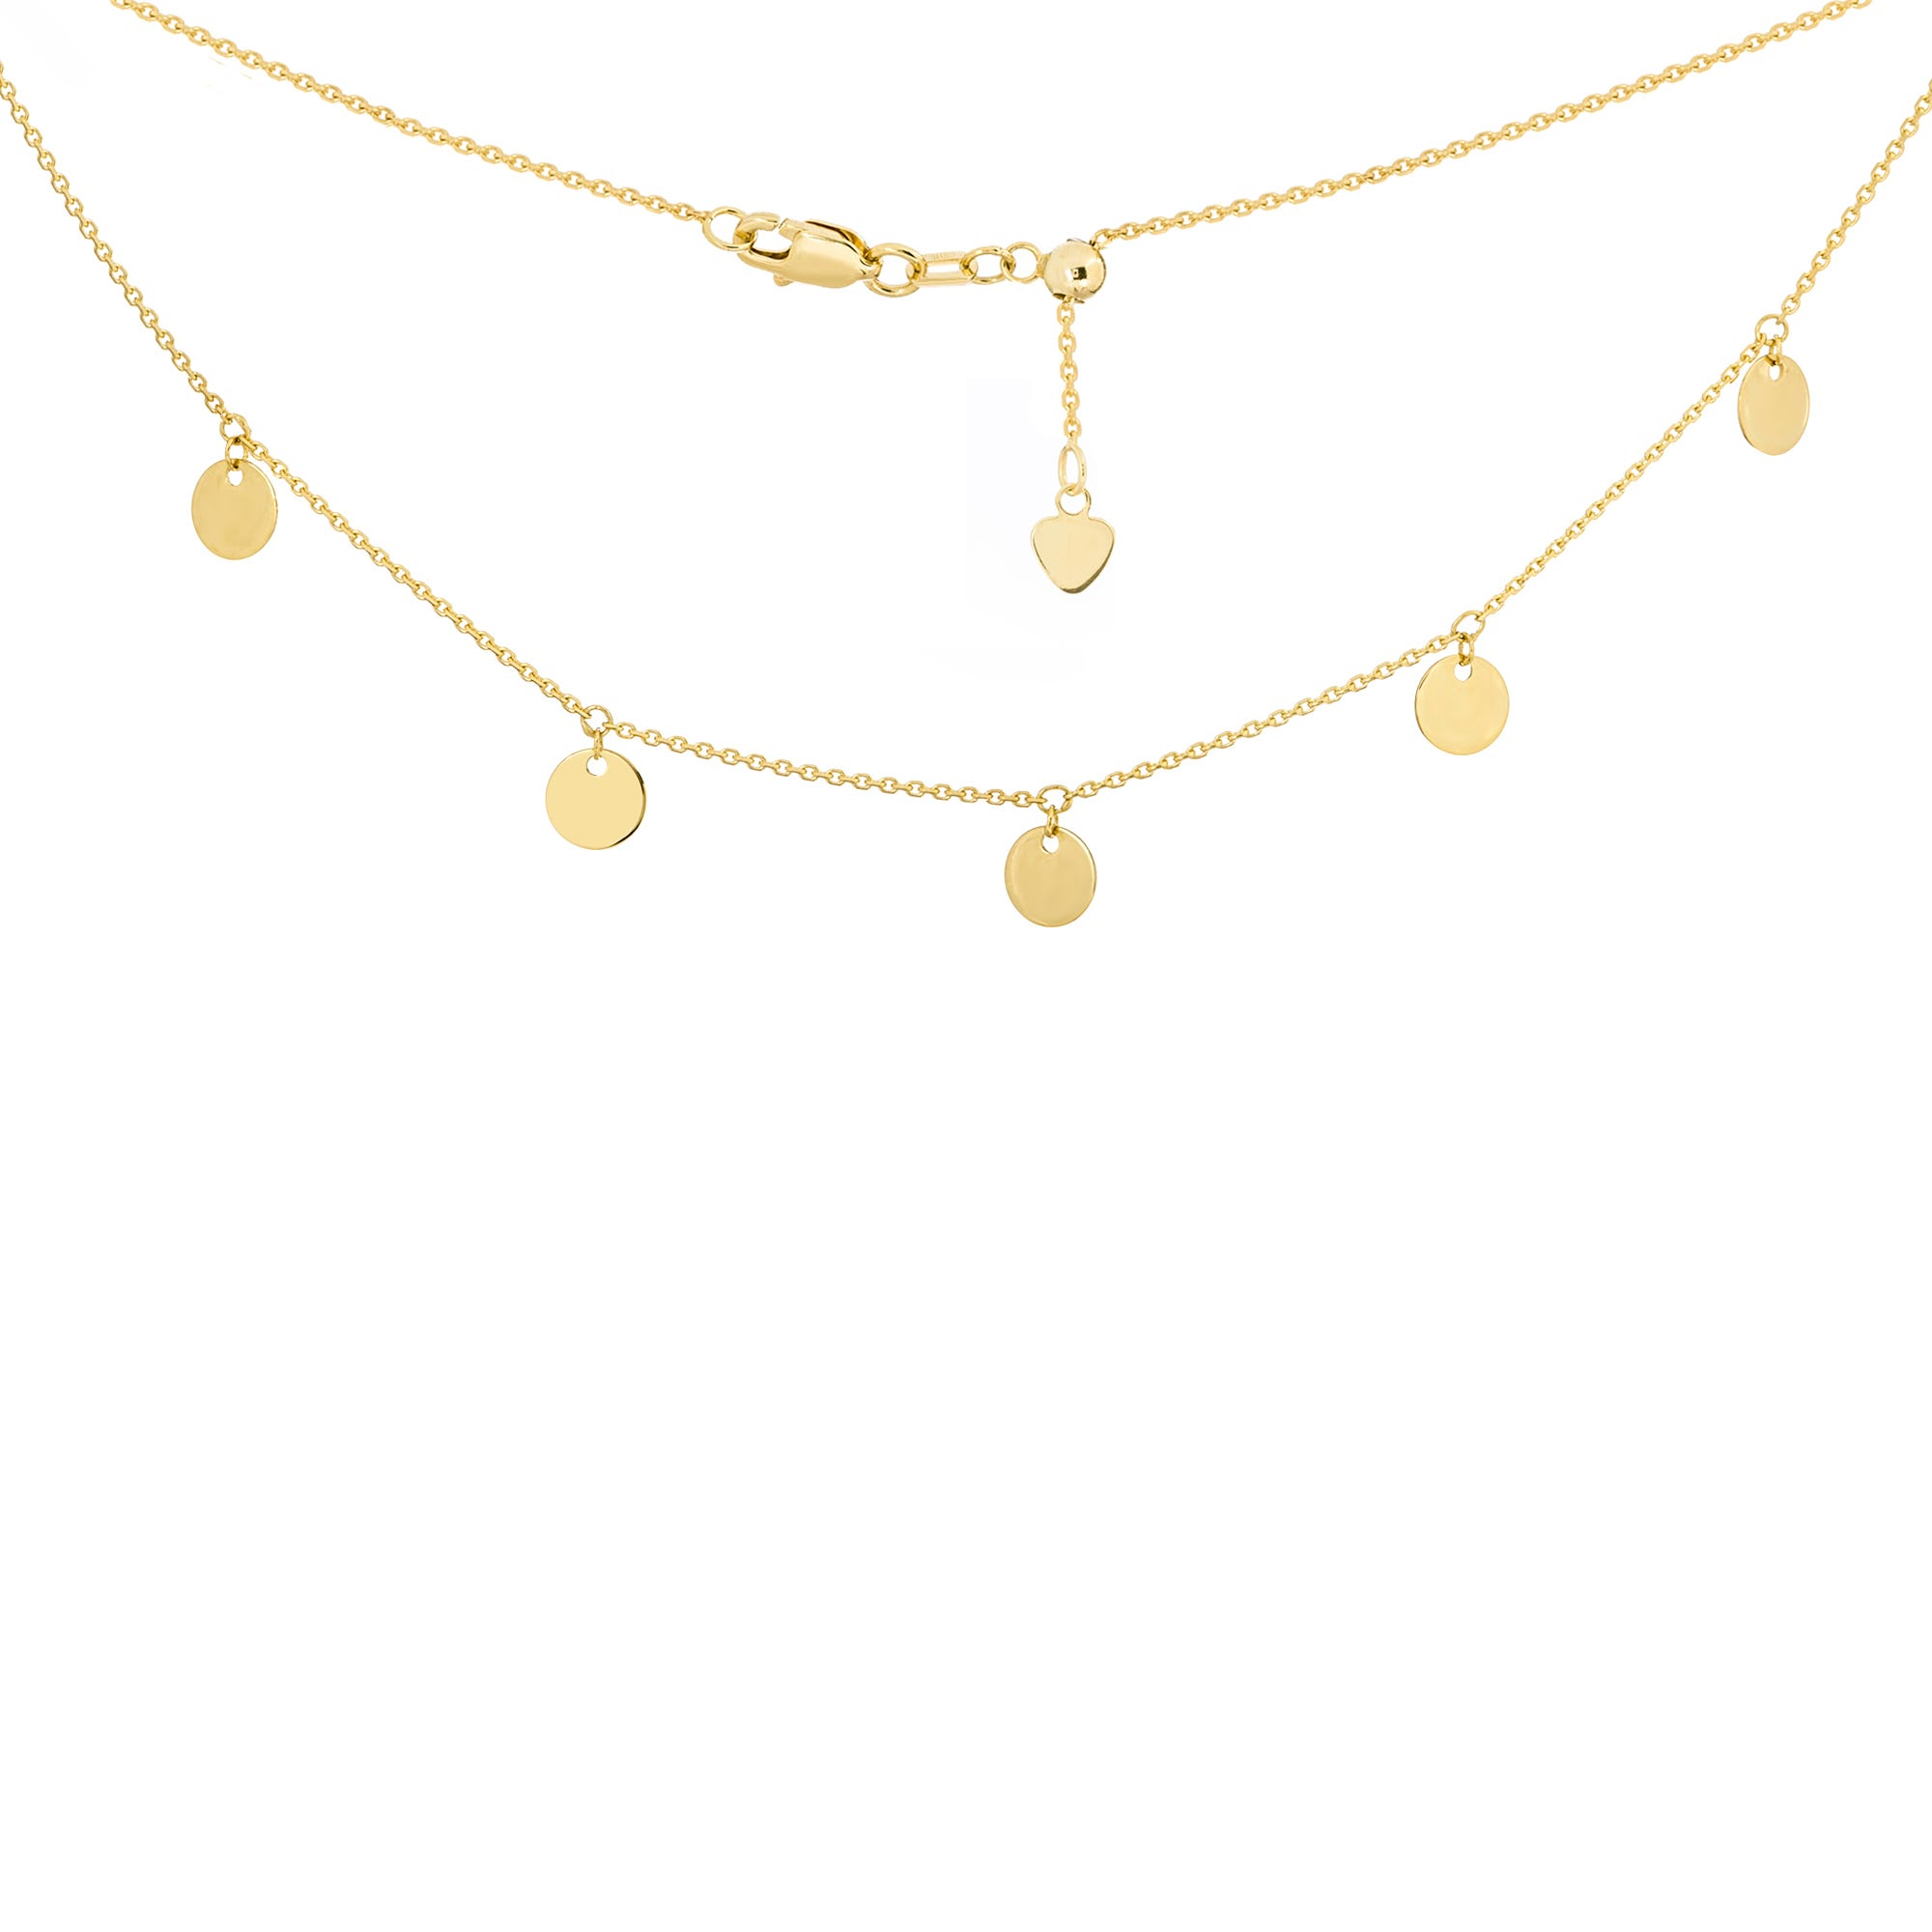 Mini Disc Dangle Adjustable Choker Necklace in 14k Yellow Gold